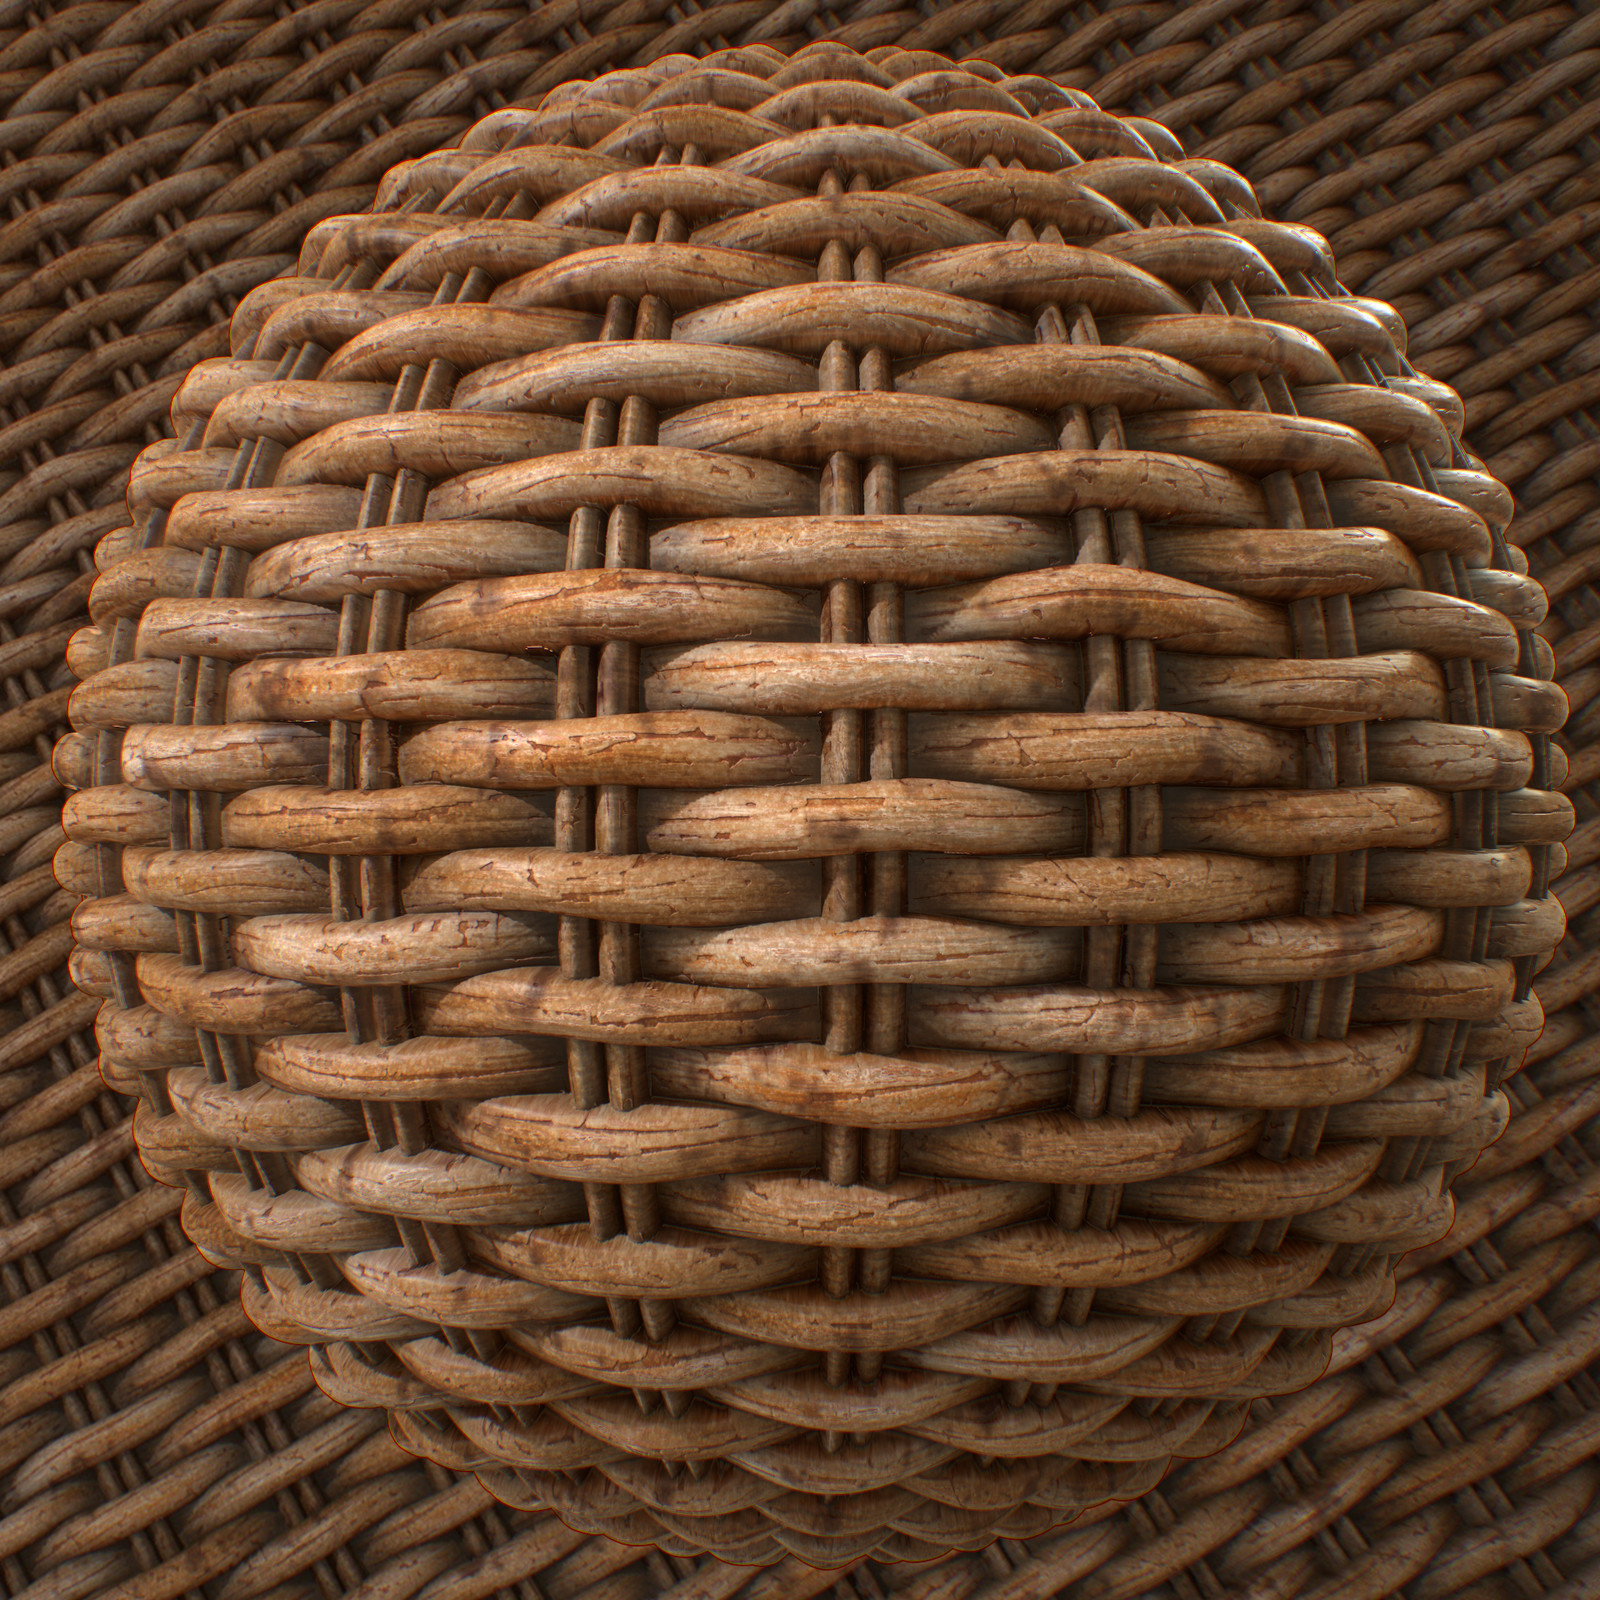 Wicker - Substance Designer